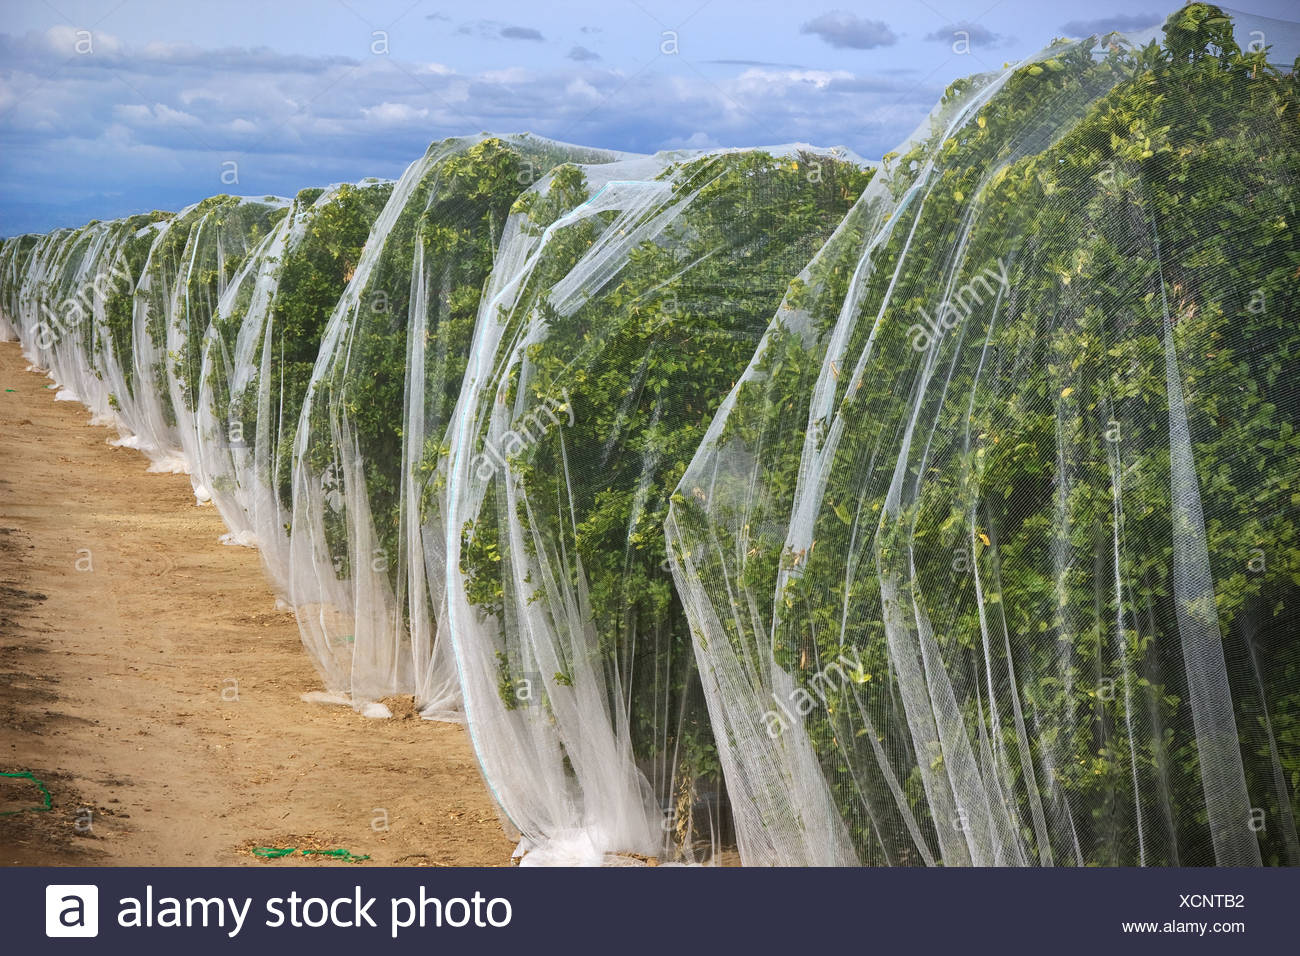 Netting Covering Stock Photos & Netting Covering Stock